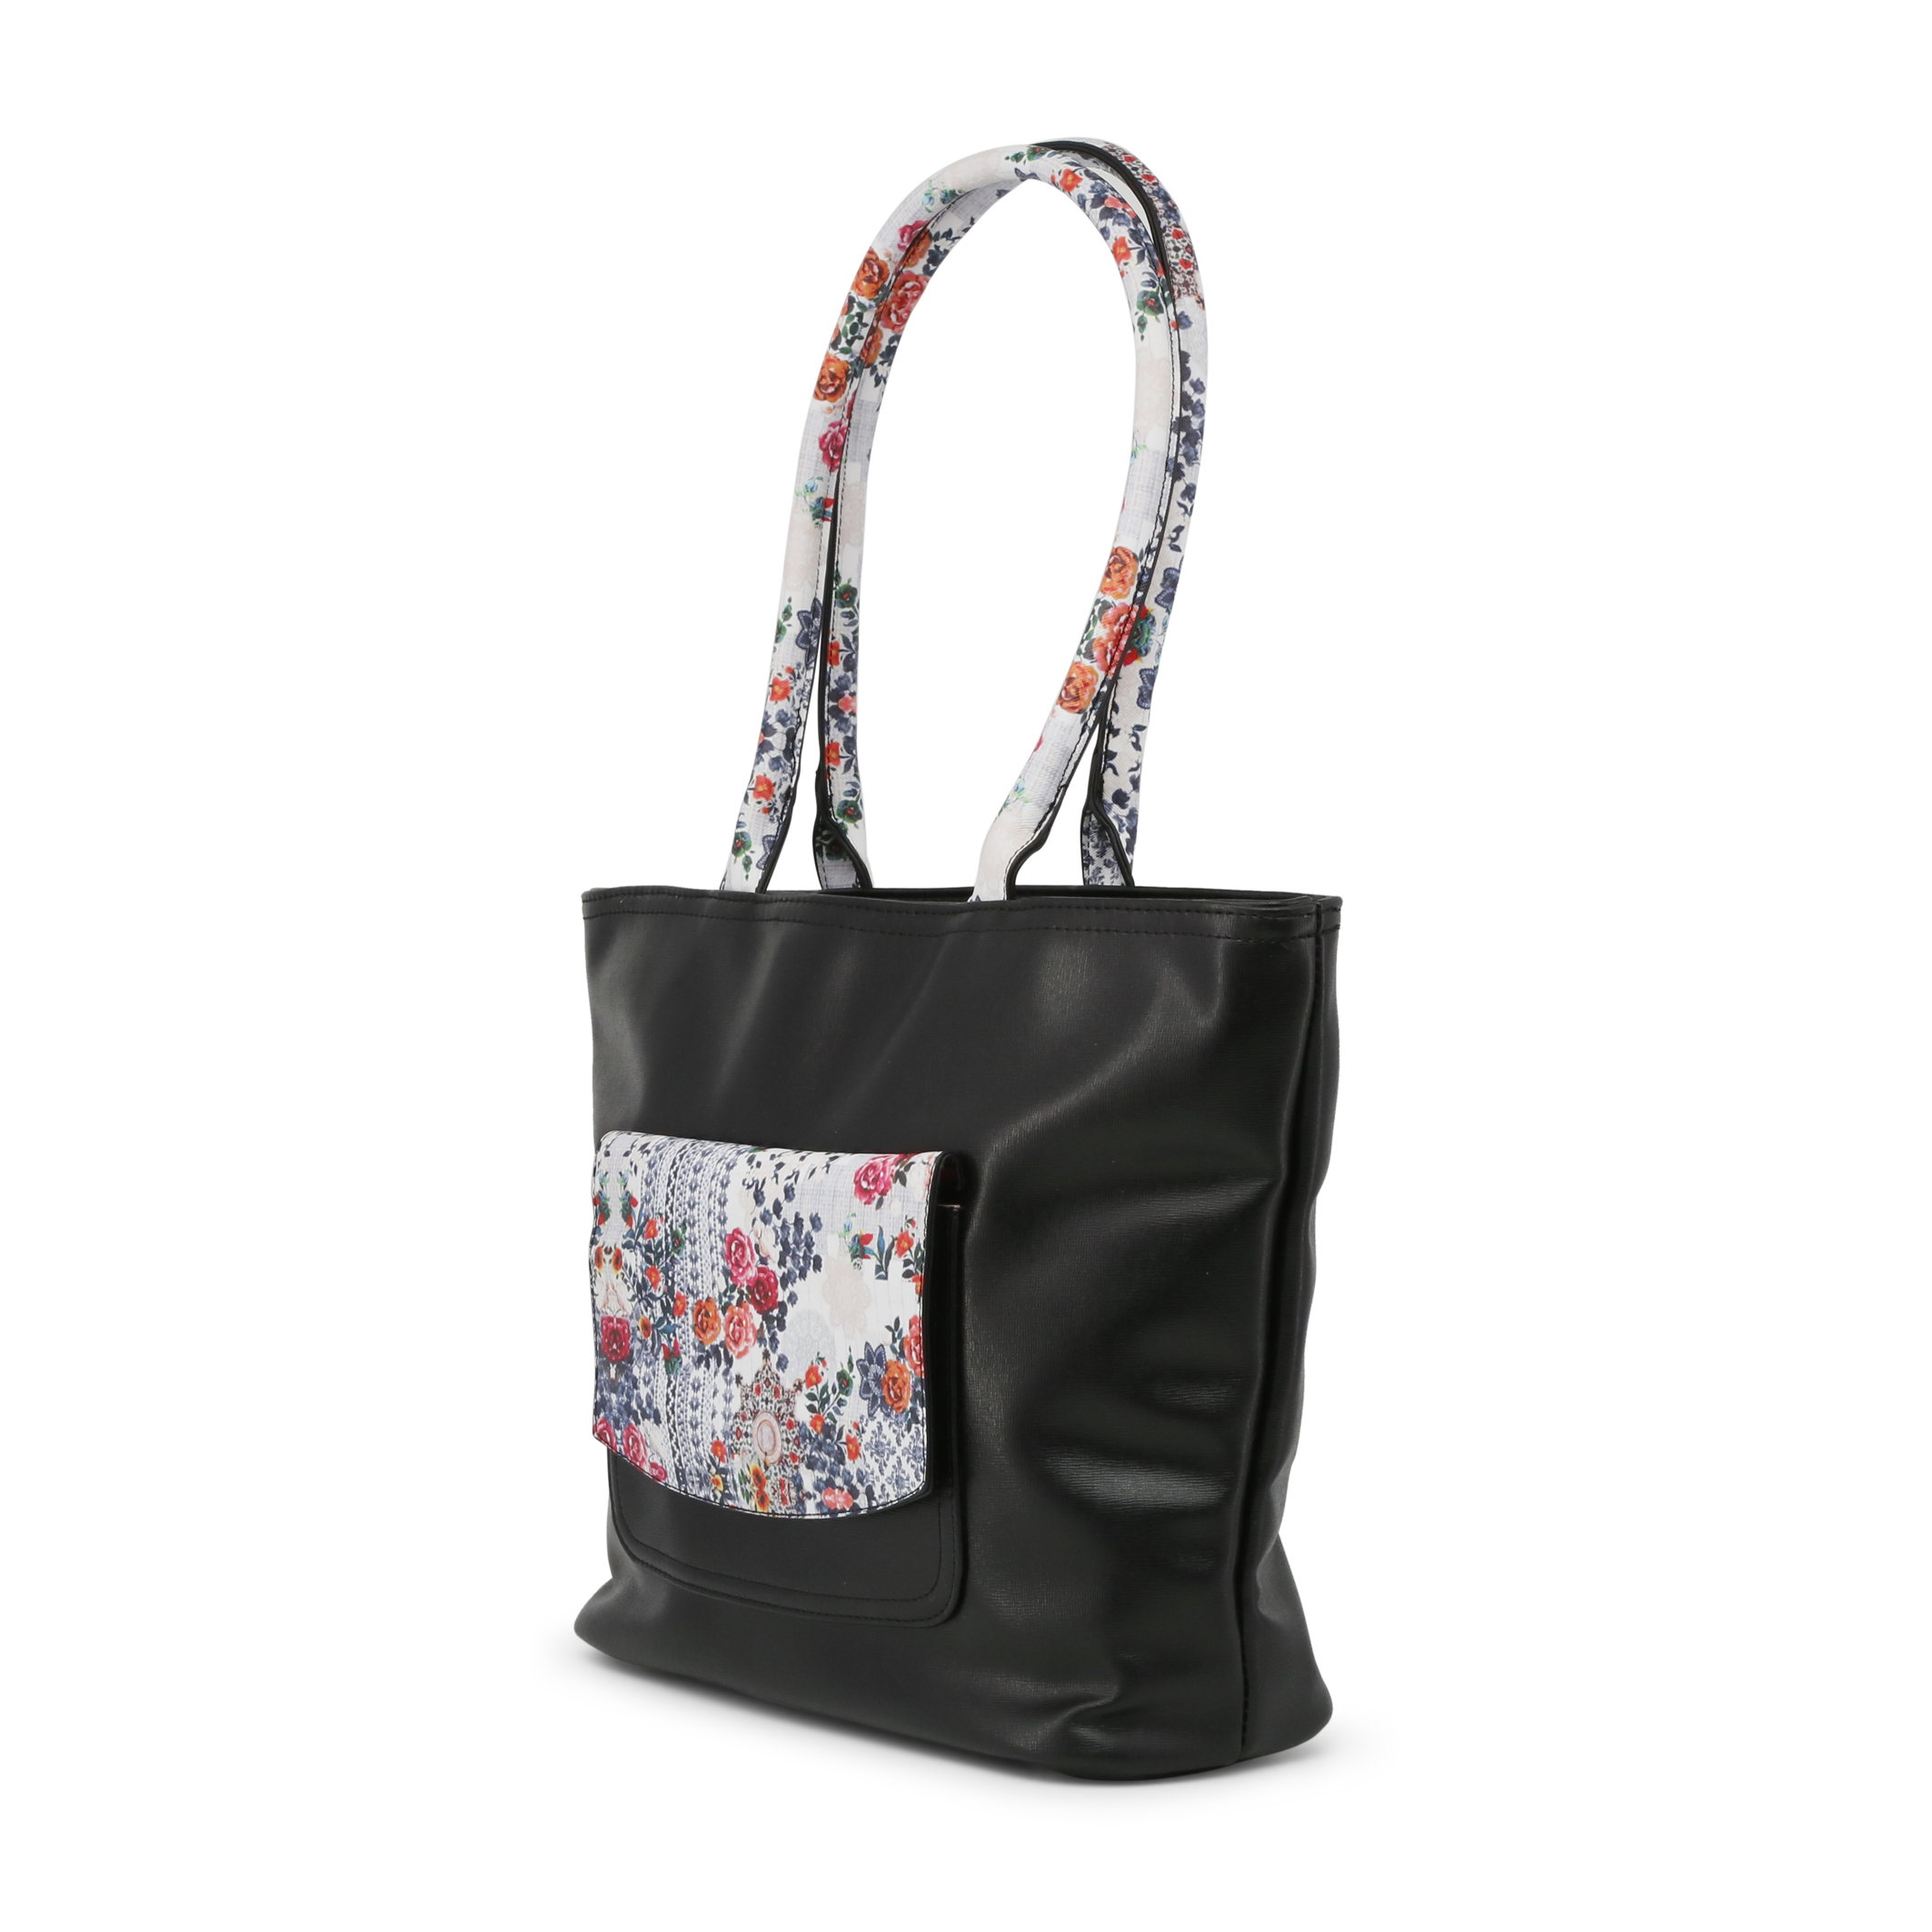 Shopping bag Laura Biagiotti LB18S258-3 Donna Nero 86268